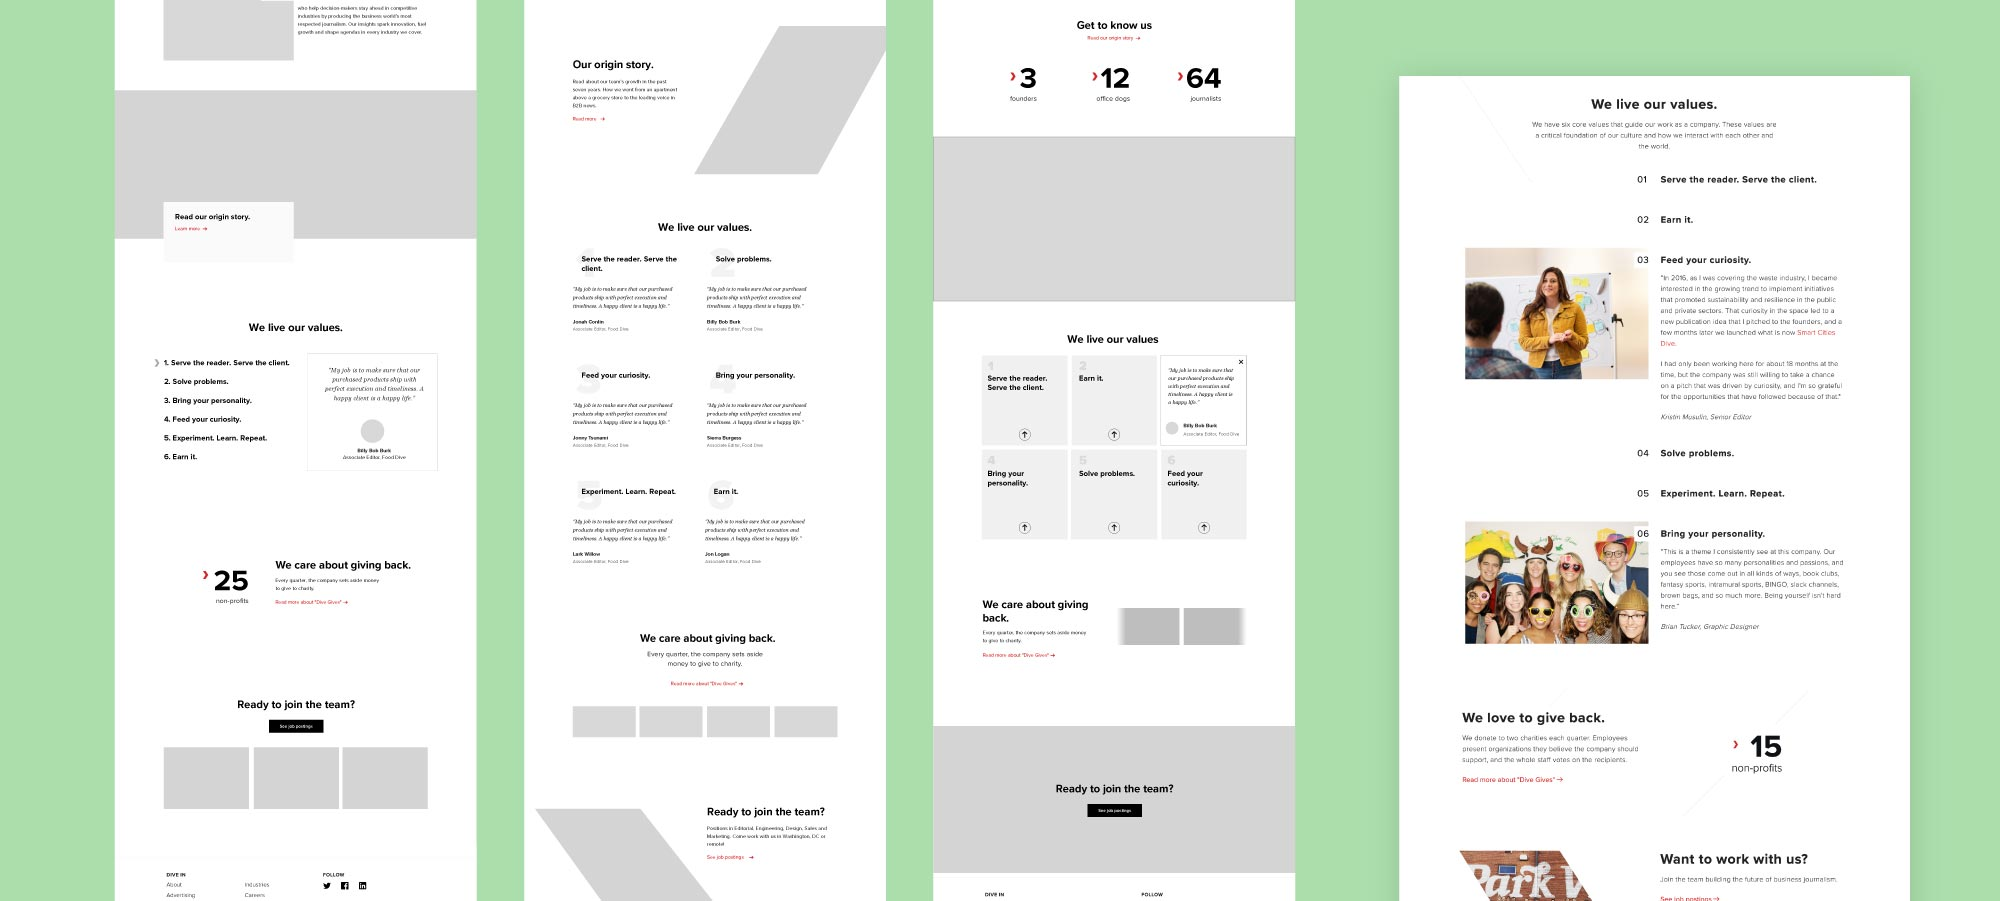 Mockups for the company values section and the final design.